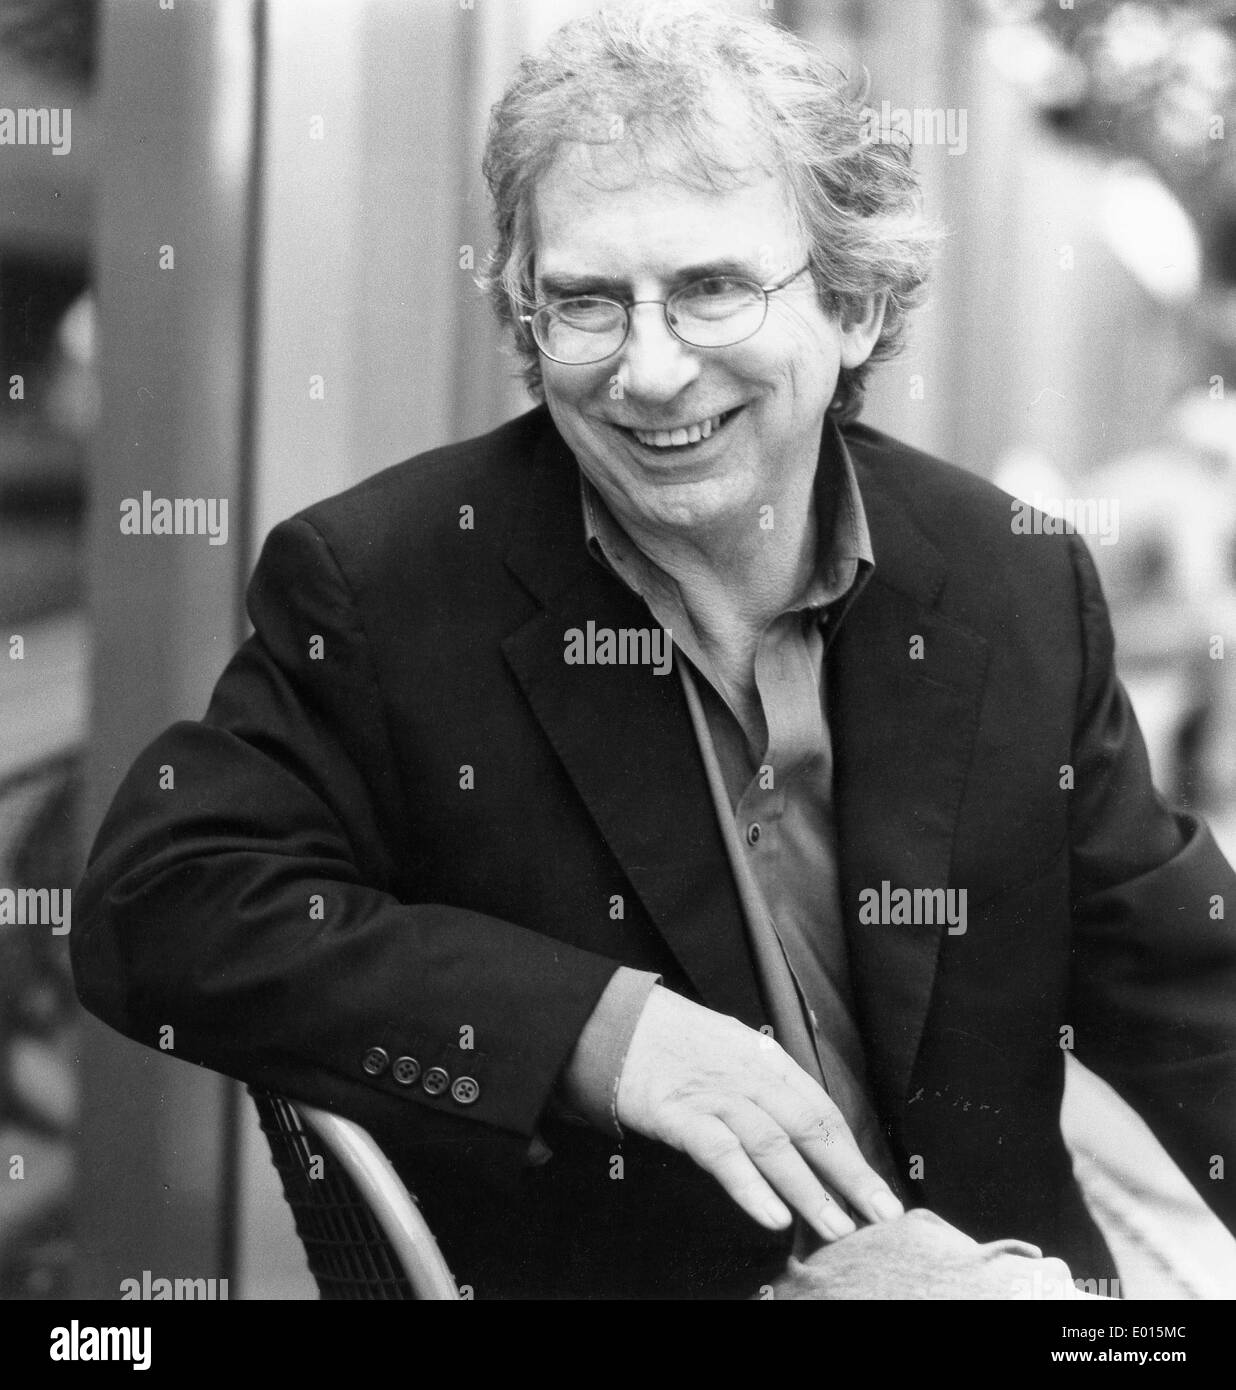 Peter Carey, 2005 - Stock Image